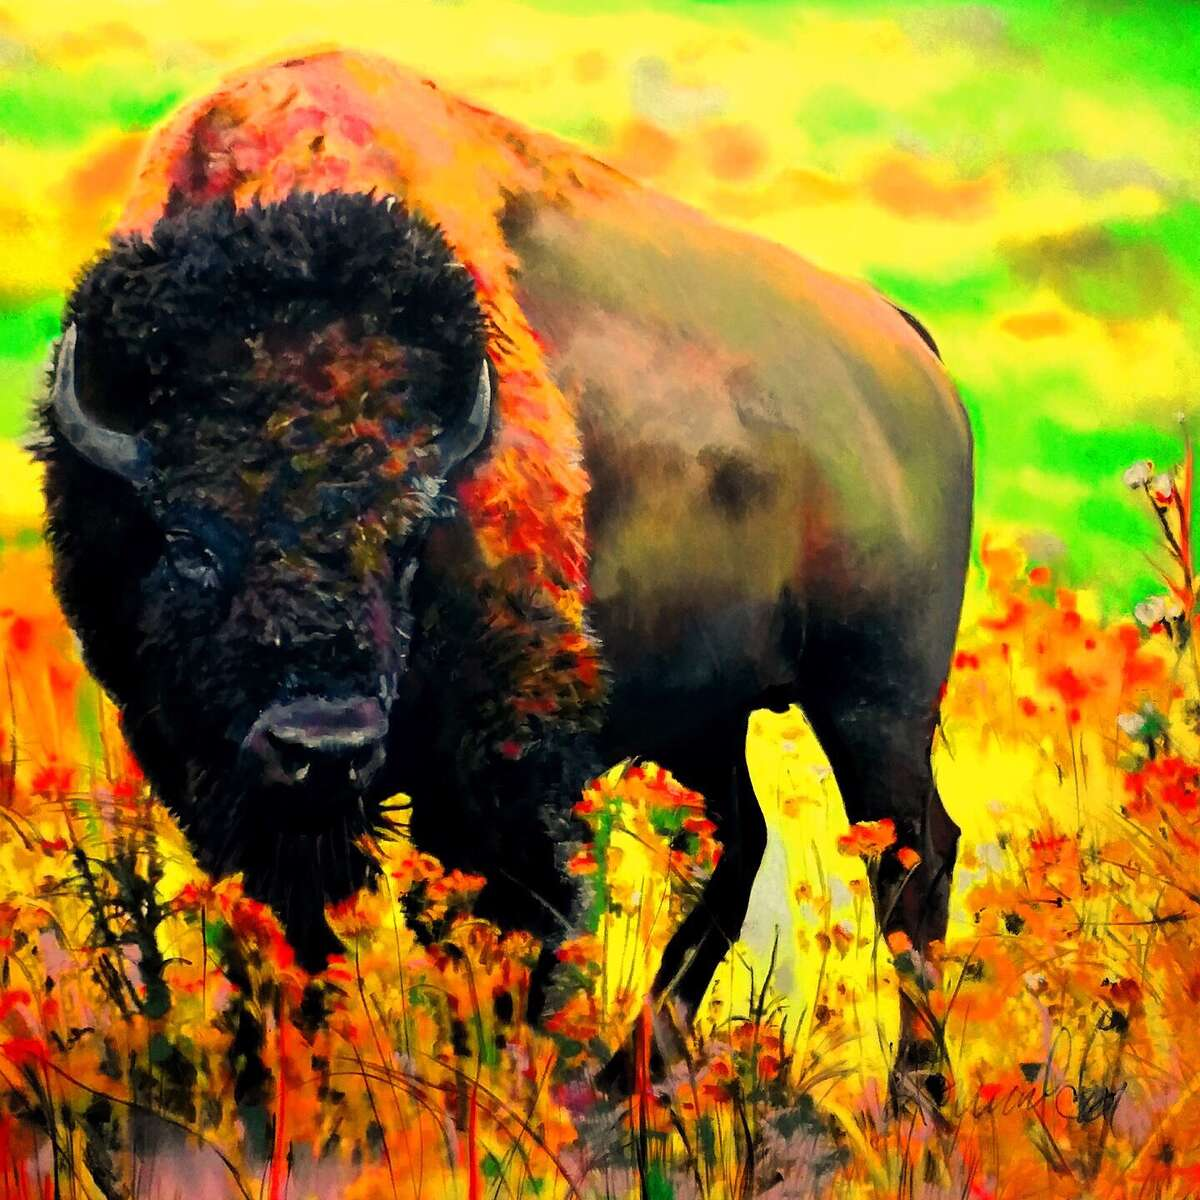 Artist Julie Howard will sell her work in a new vendor area between NRG Center and NRG Stadium at the Houston Livestock Show and Rodeo. Her work is done with organic pastels.